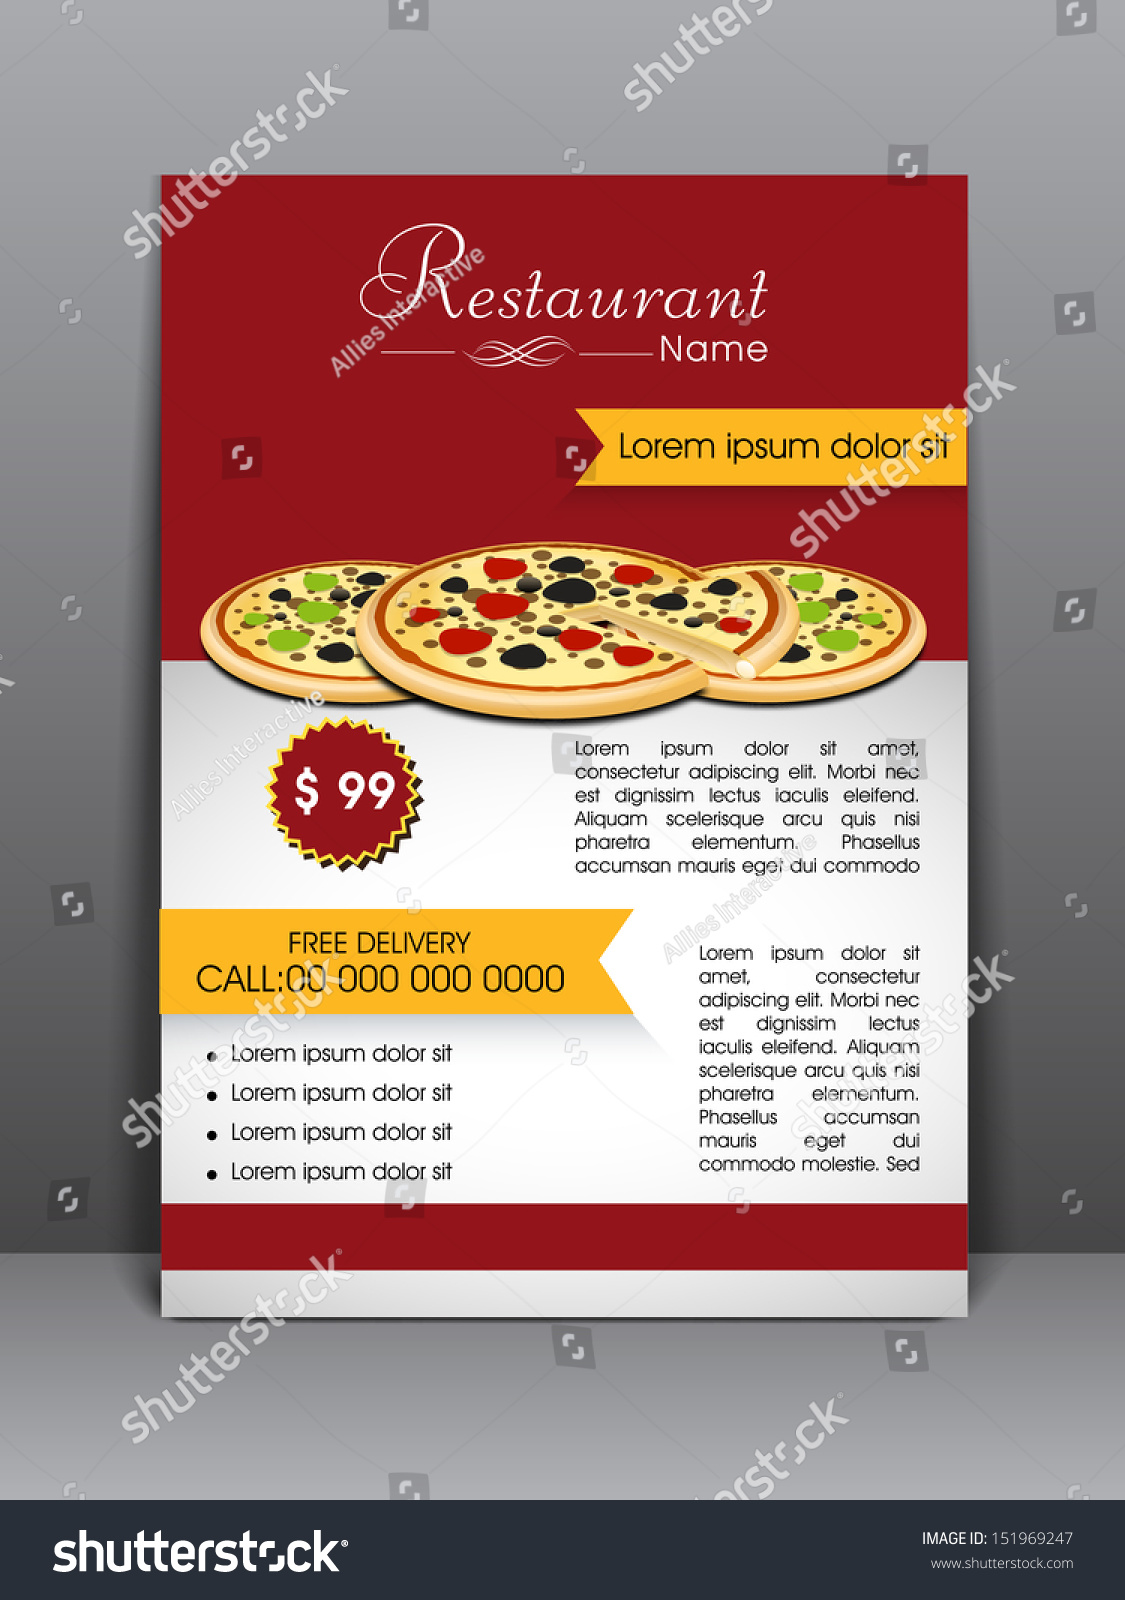 food menu flyer template banner design stock vector  food menu flyer template or banner design can be use for publishing print and